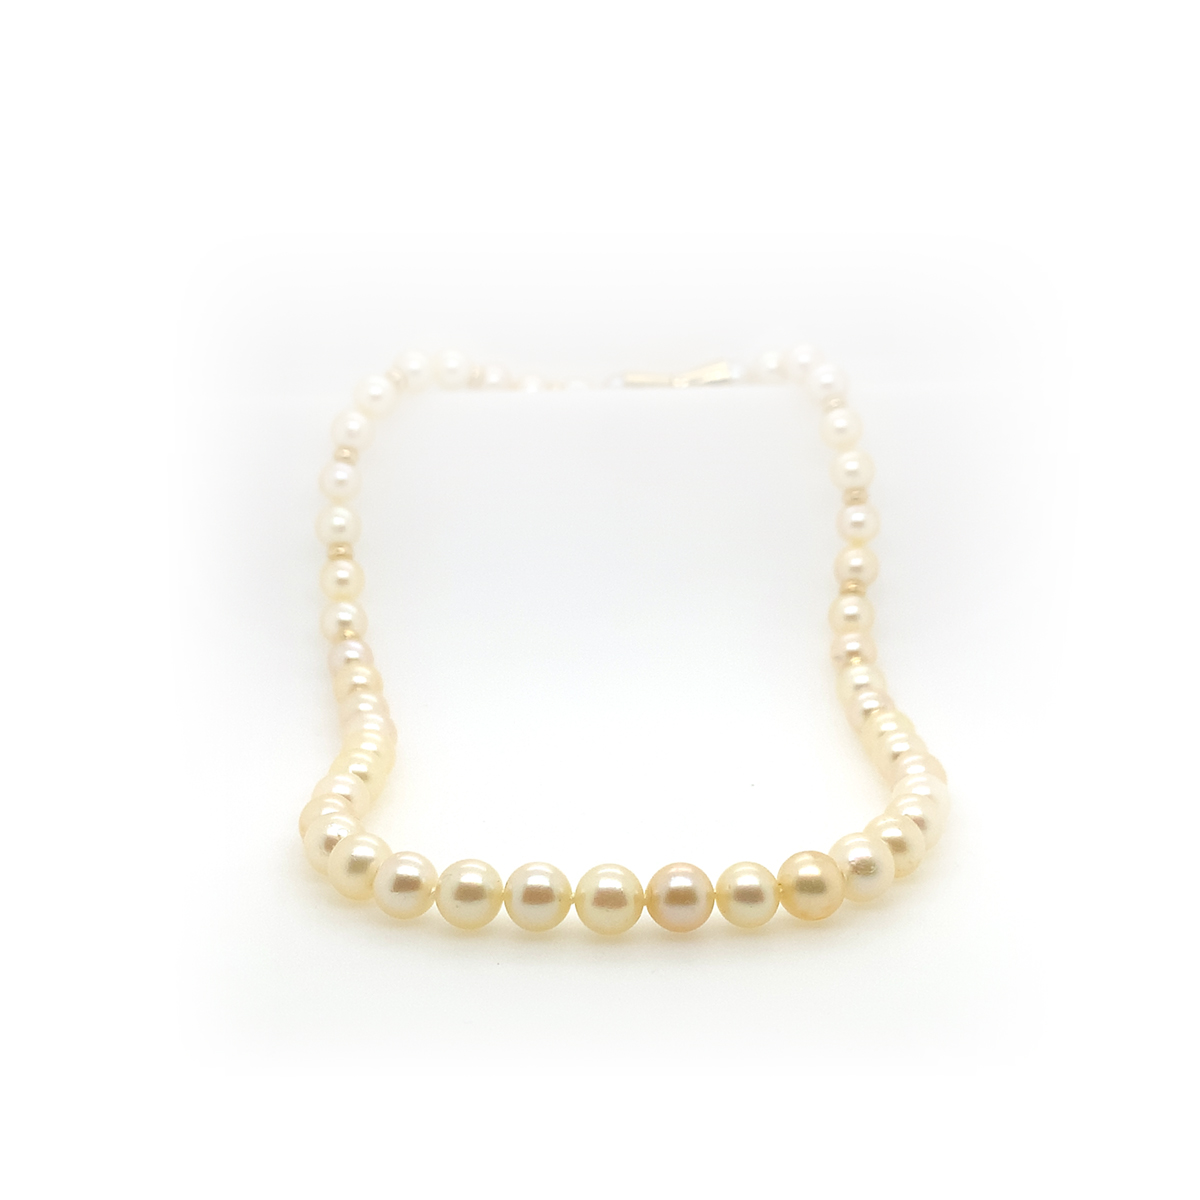 Vintage 14 Karat Yellow Gold Cultured Pearl Necklace